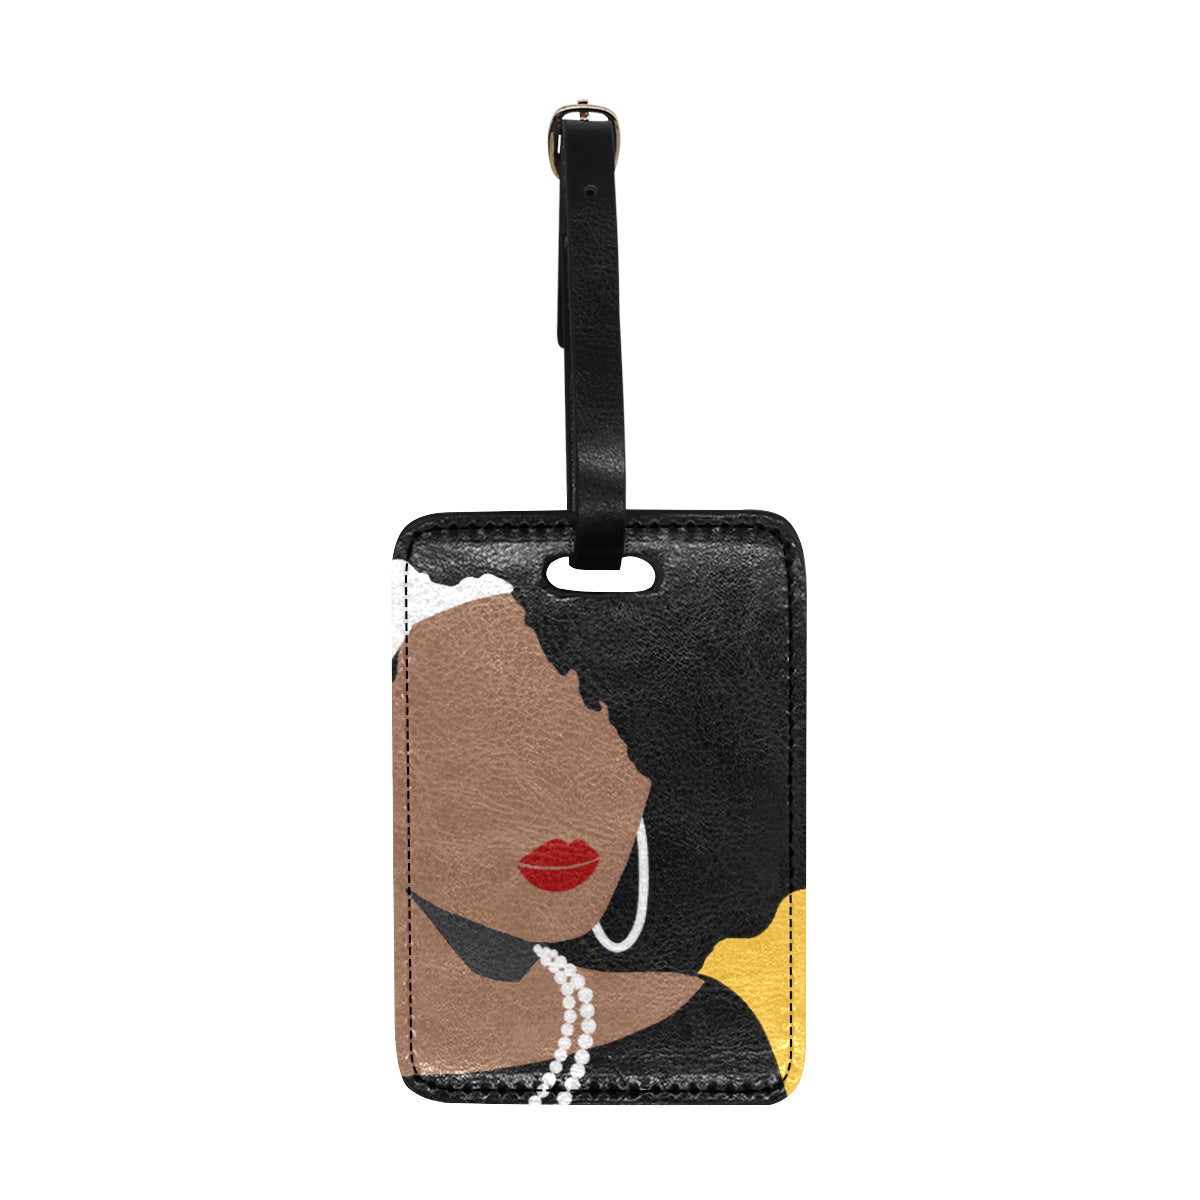 Bougie Kelley 1925 Luggage Tag